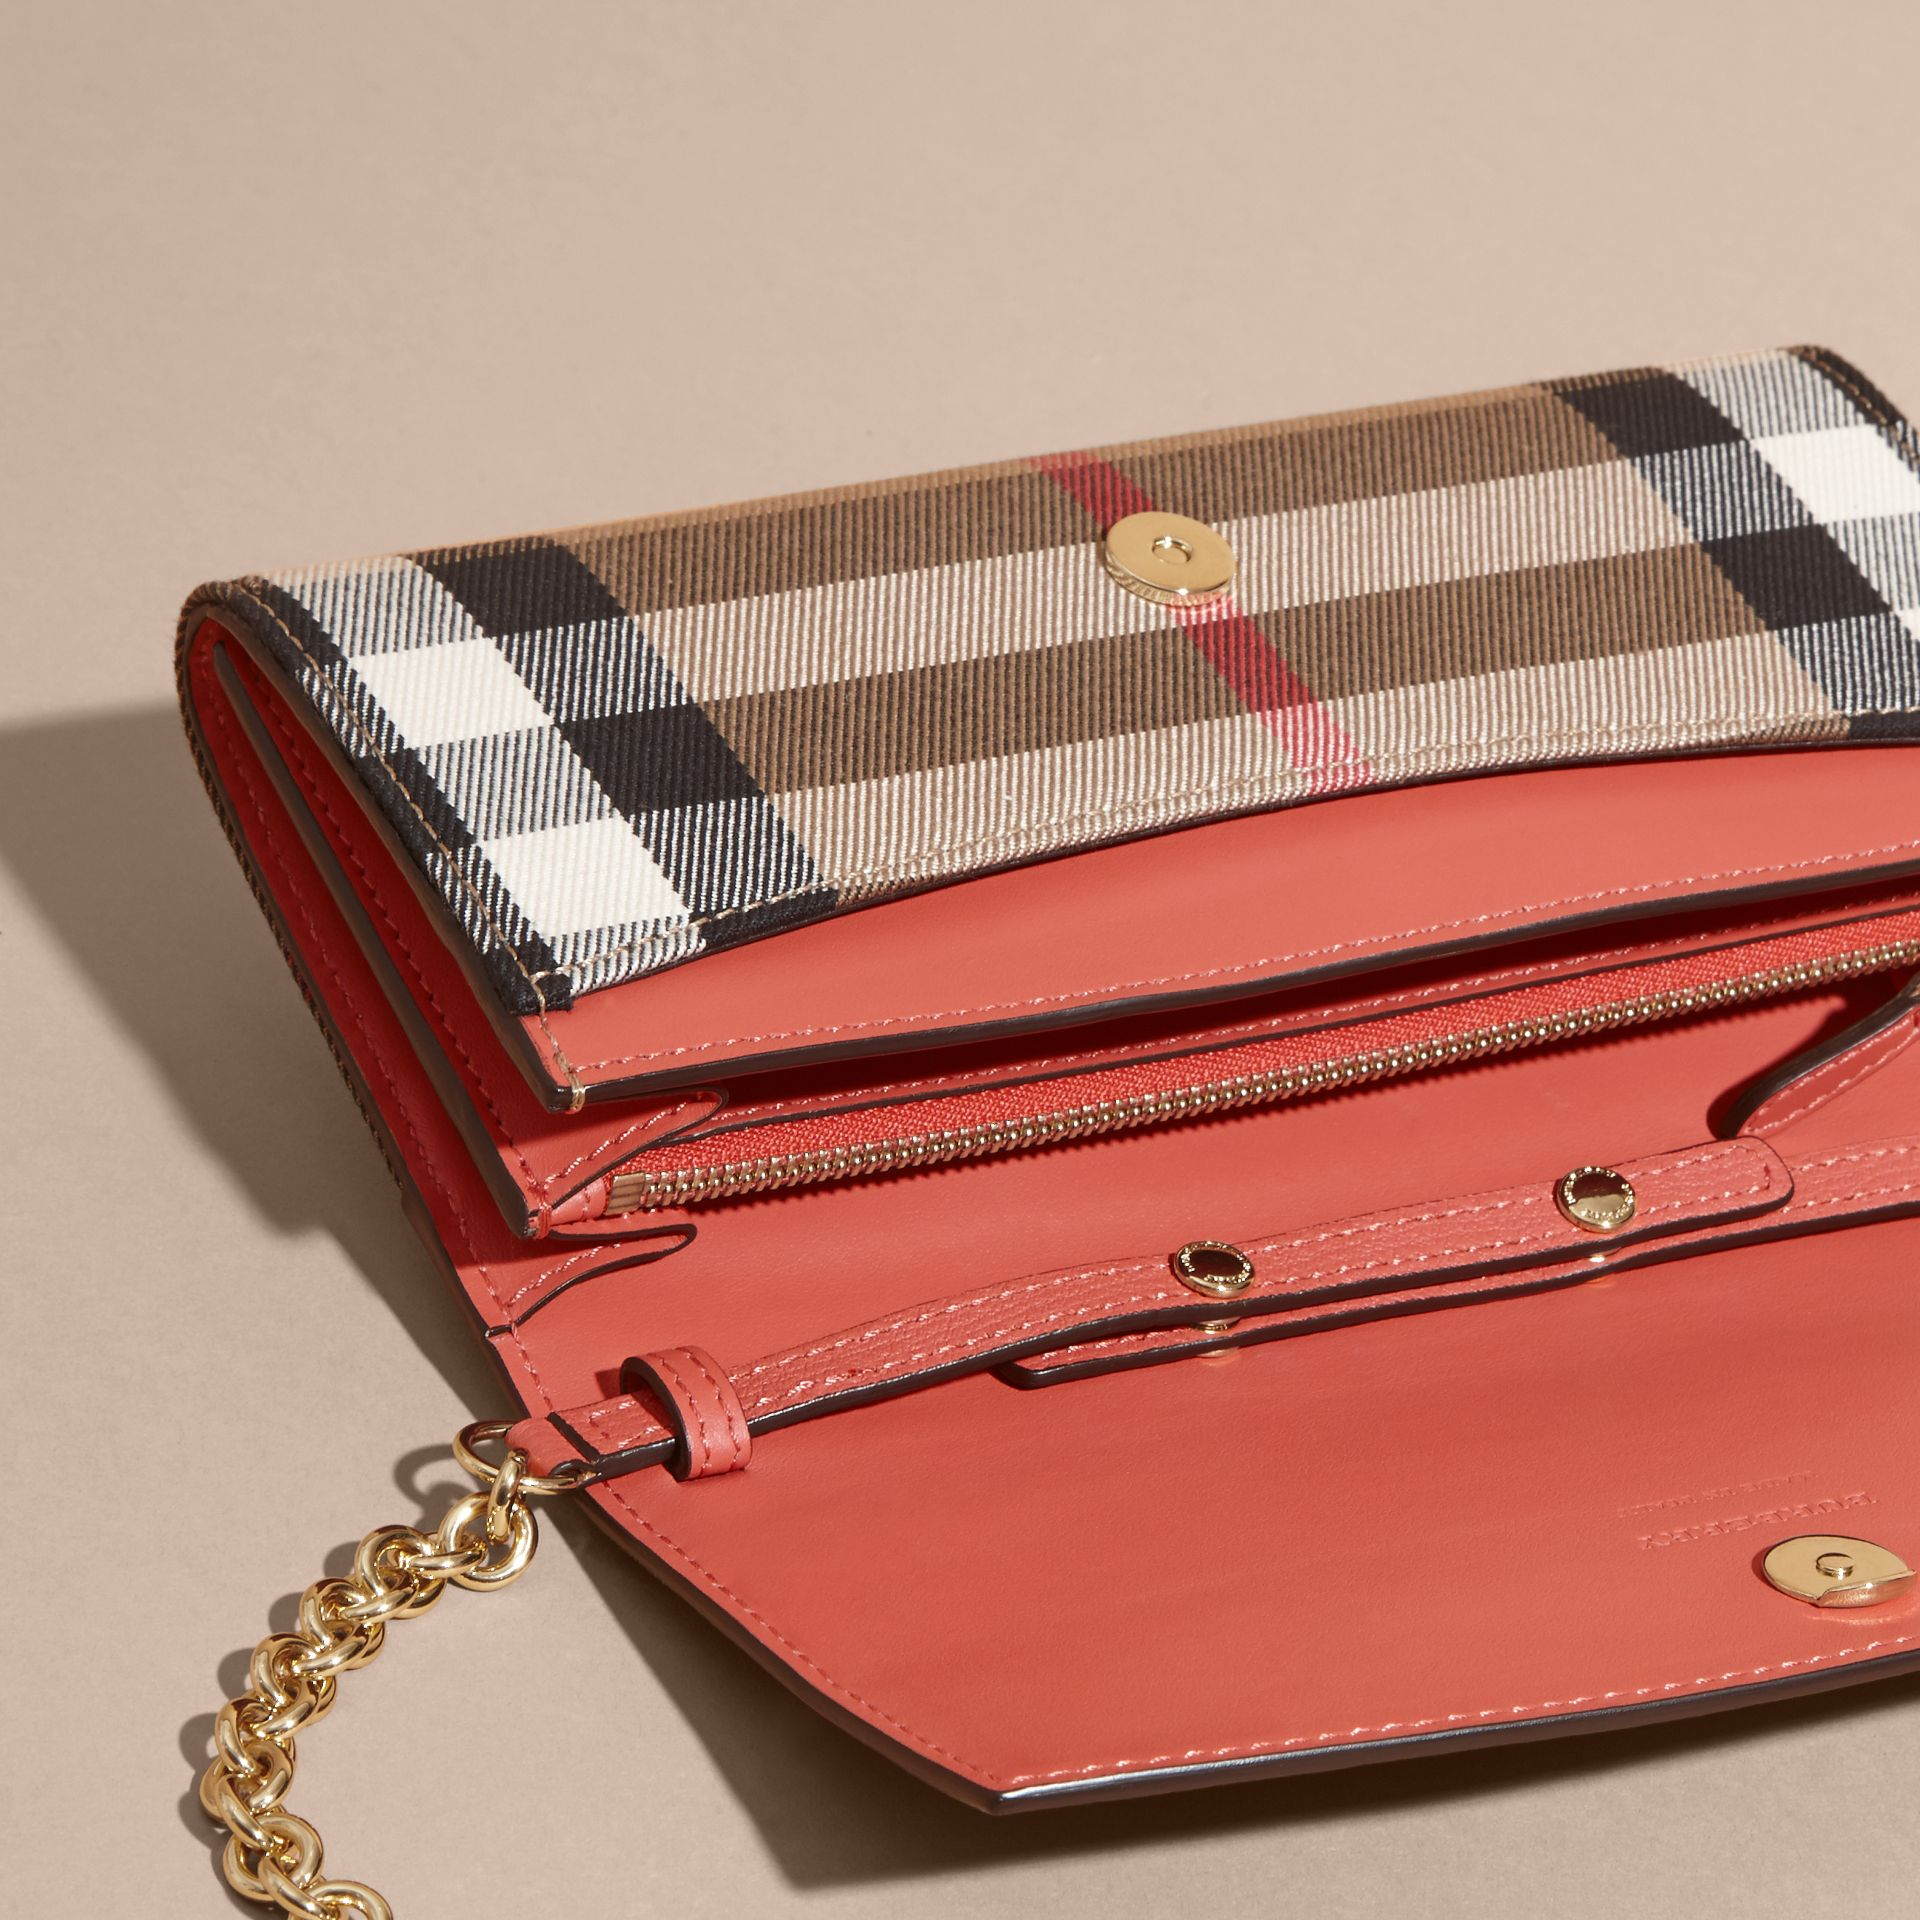 House Check and Leather Wallet with Chain in Cinnamon Red - Women | Burberry United States - gallery image 5